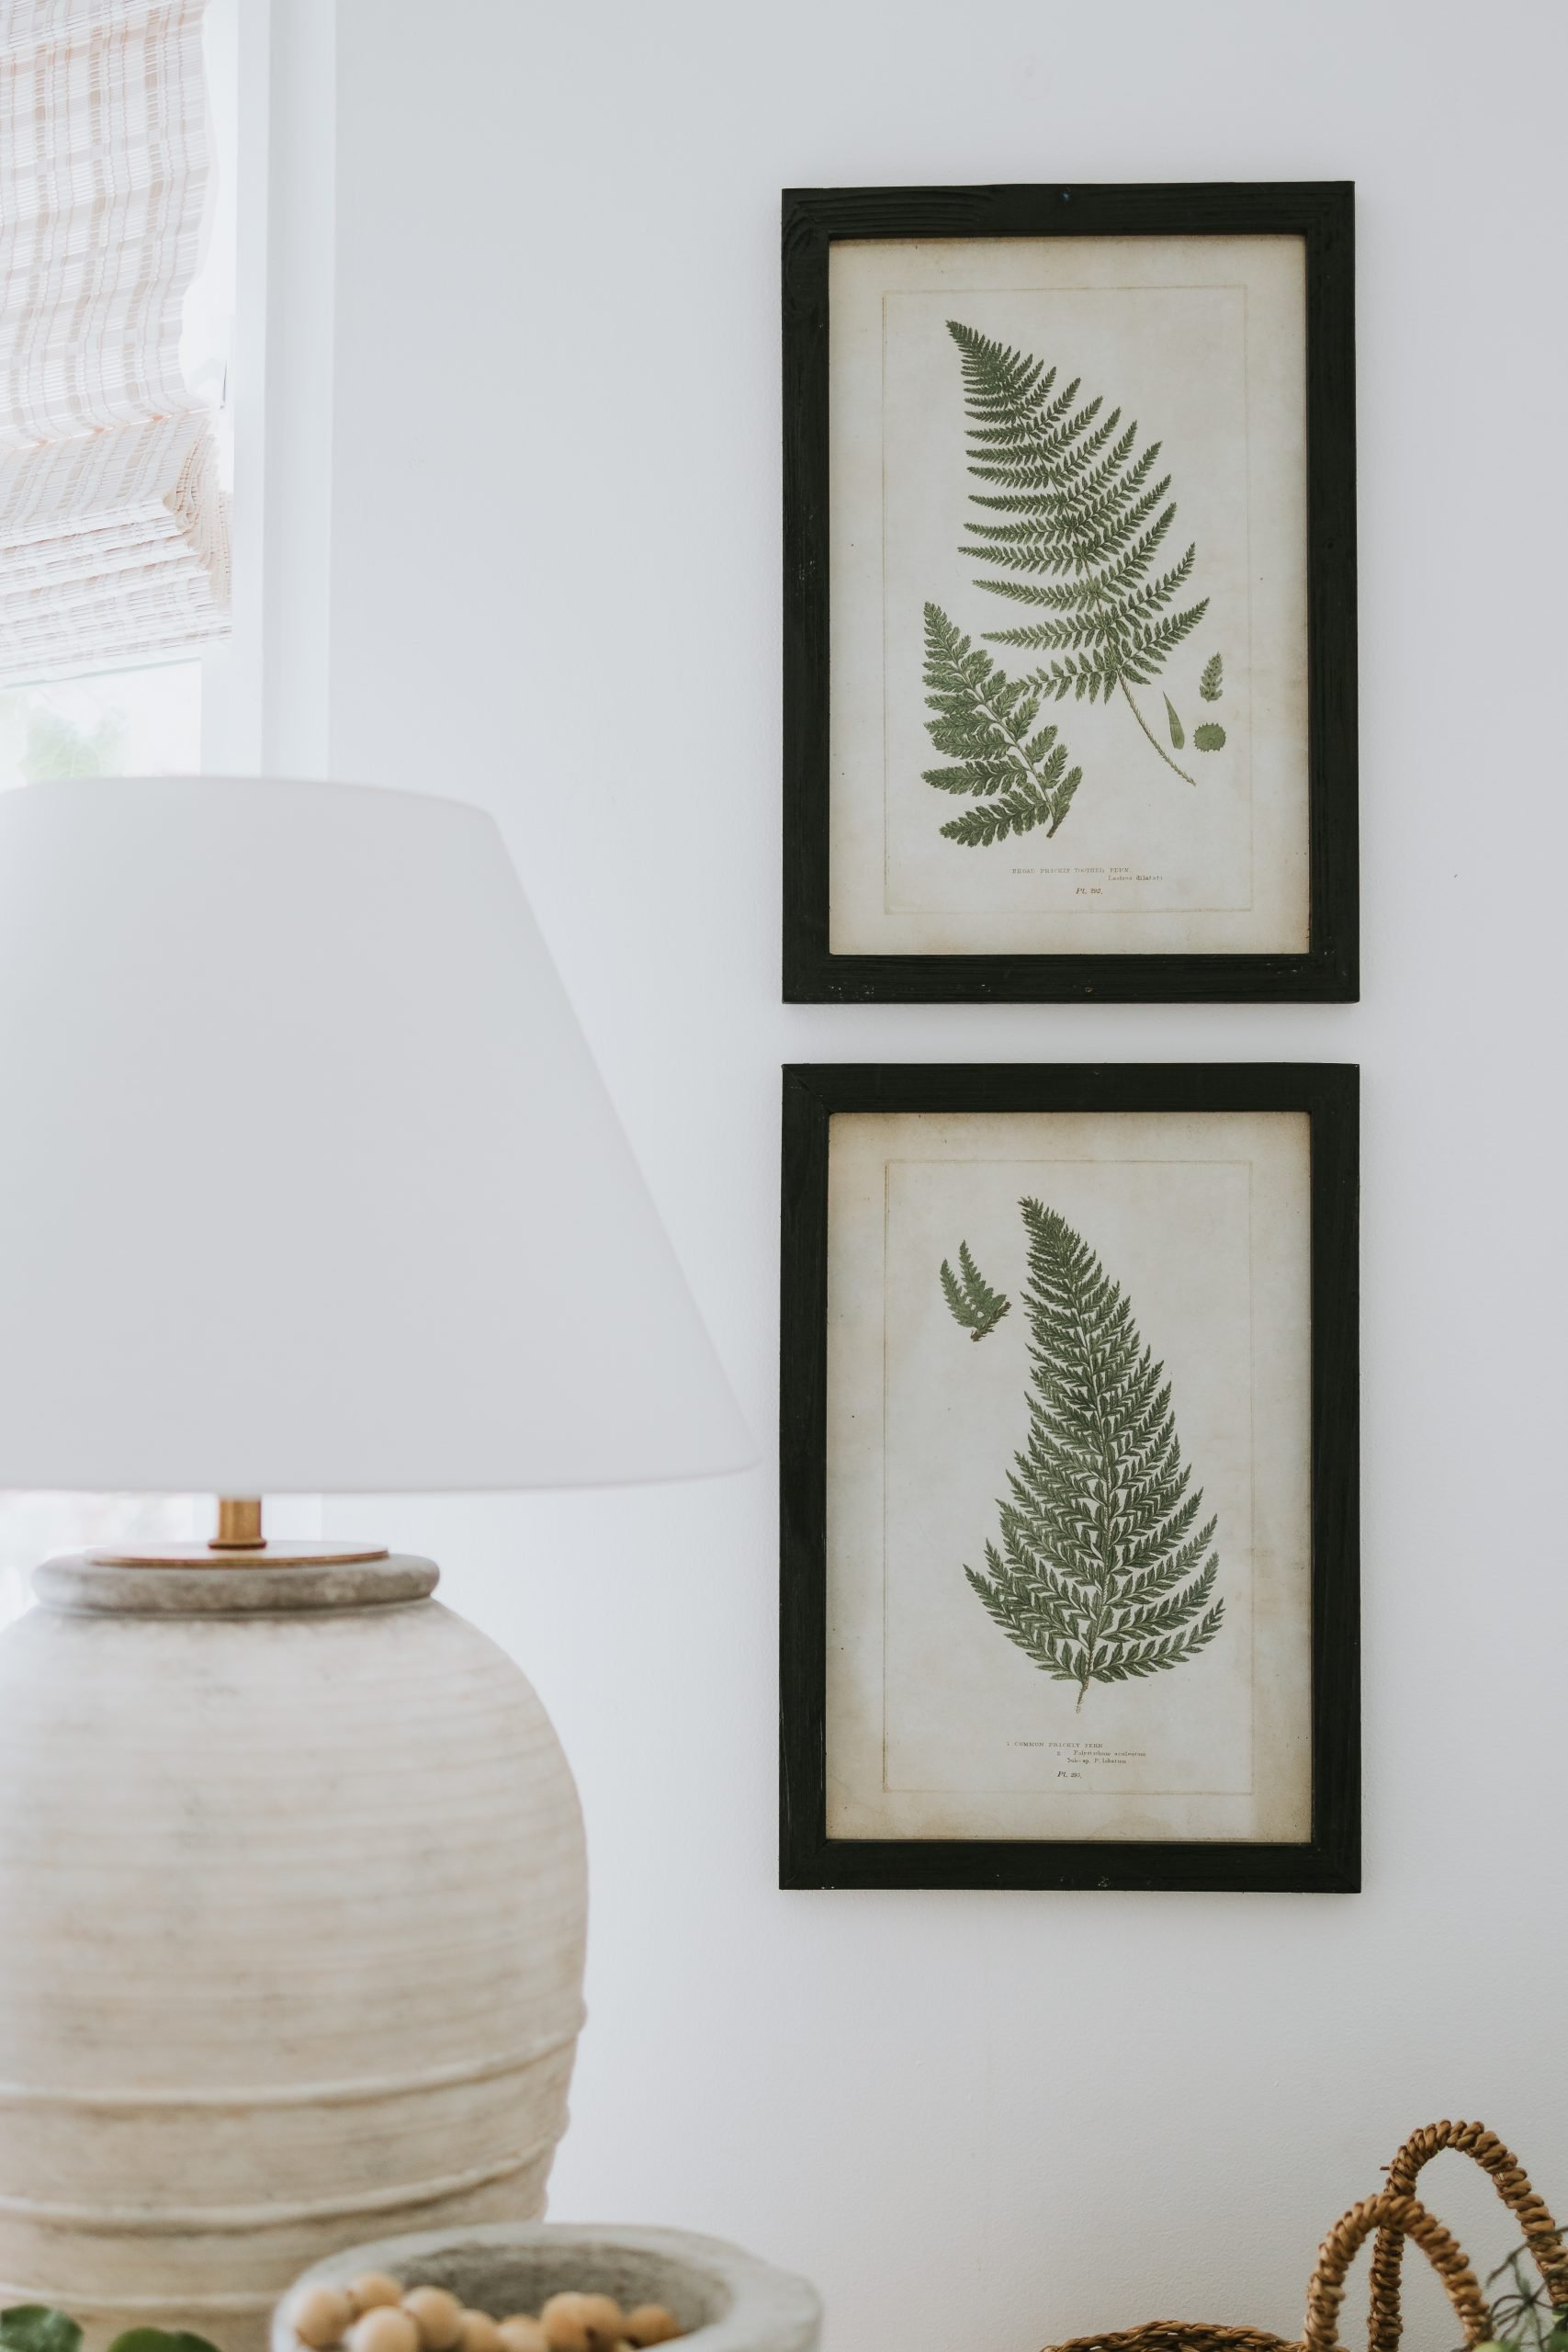 Vintage Botanical Prints in Recycled Black Frames. Instead of spending hundreds on new art, learn how to recycle your current frames and where to find beautiful botanical art! I spend 11 dollars in total on this modern botanical printables!